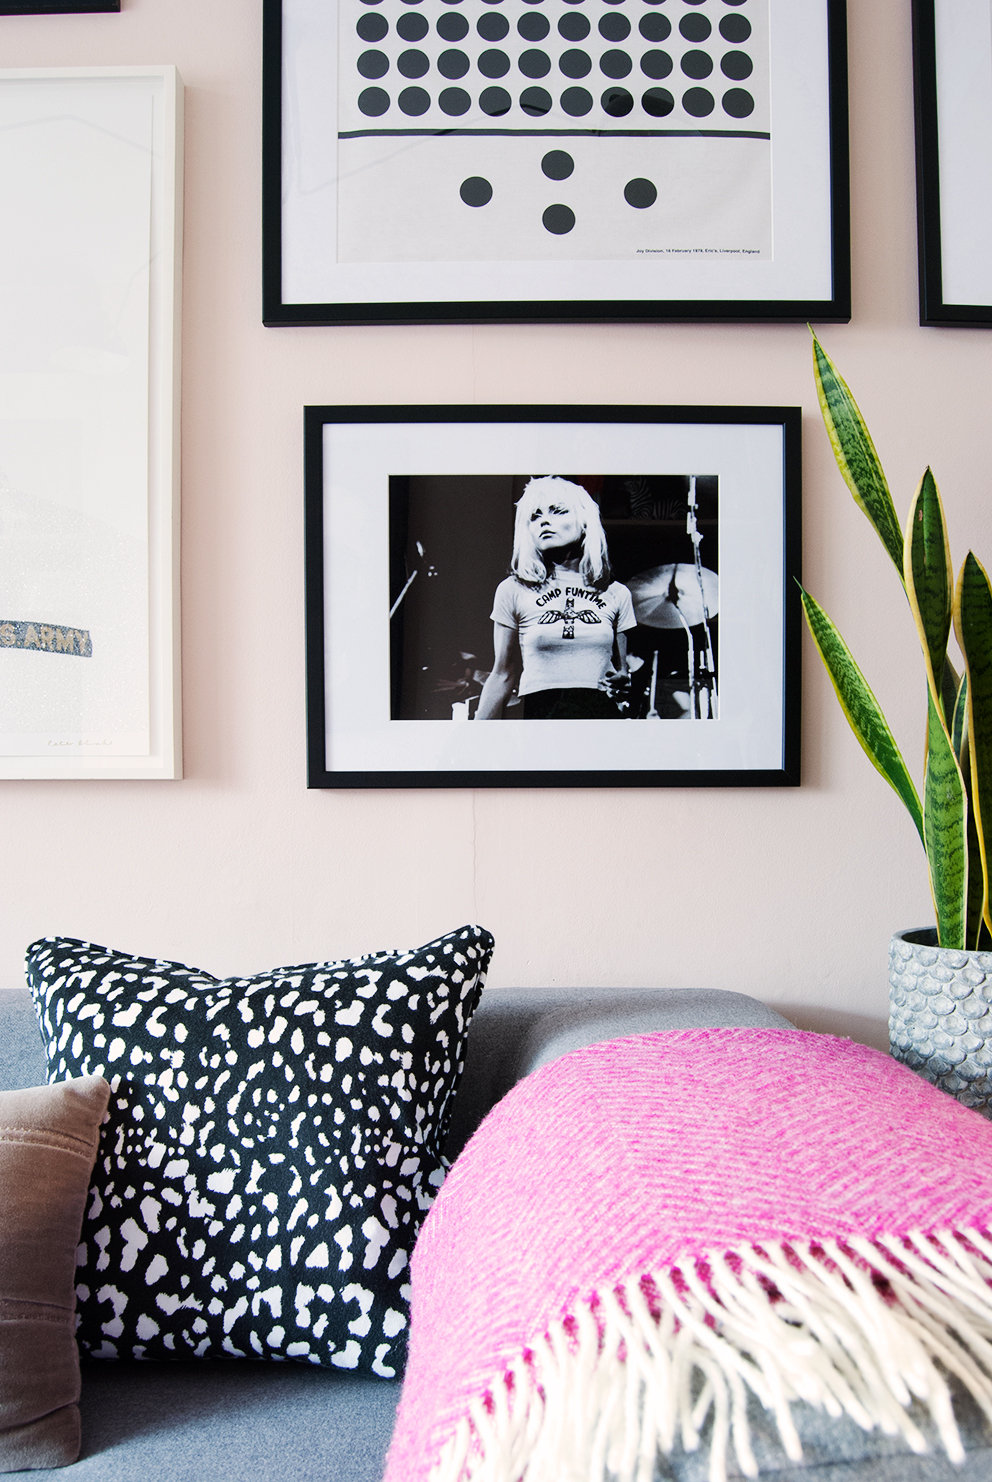 How To Make Cheap Frames Look Top Notch - Monochrome Gallery Wall